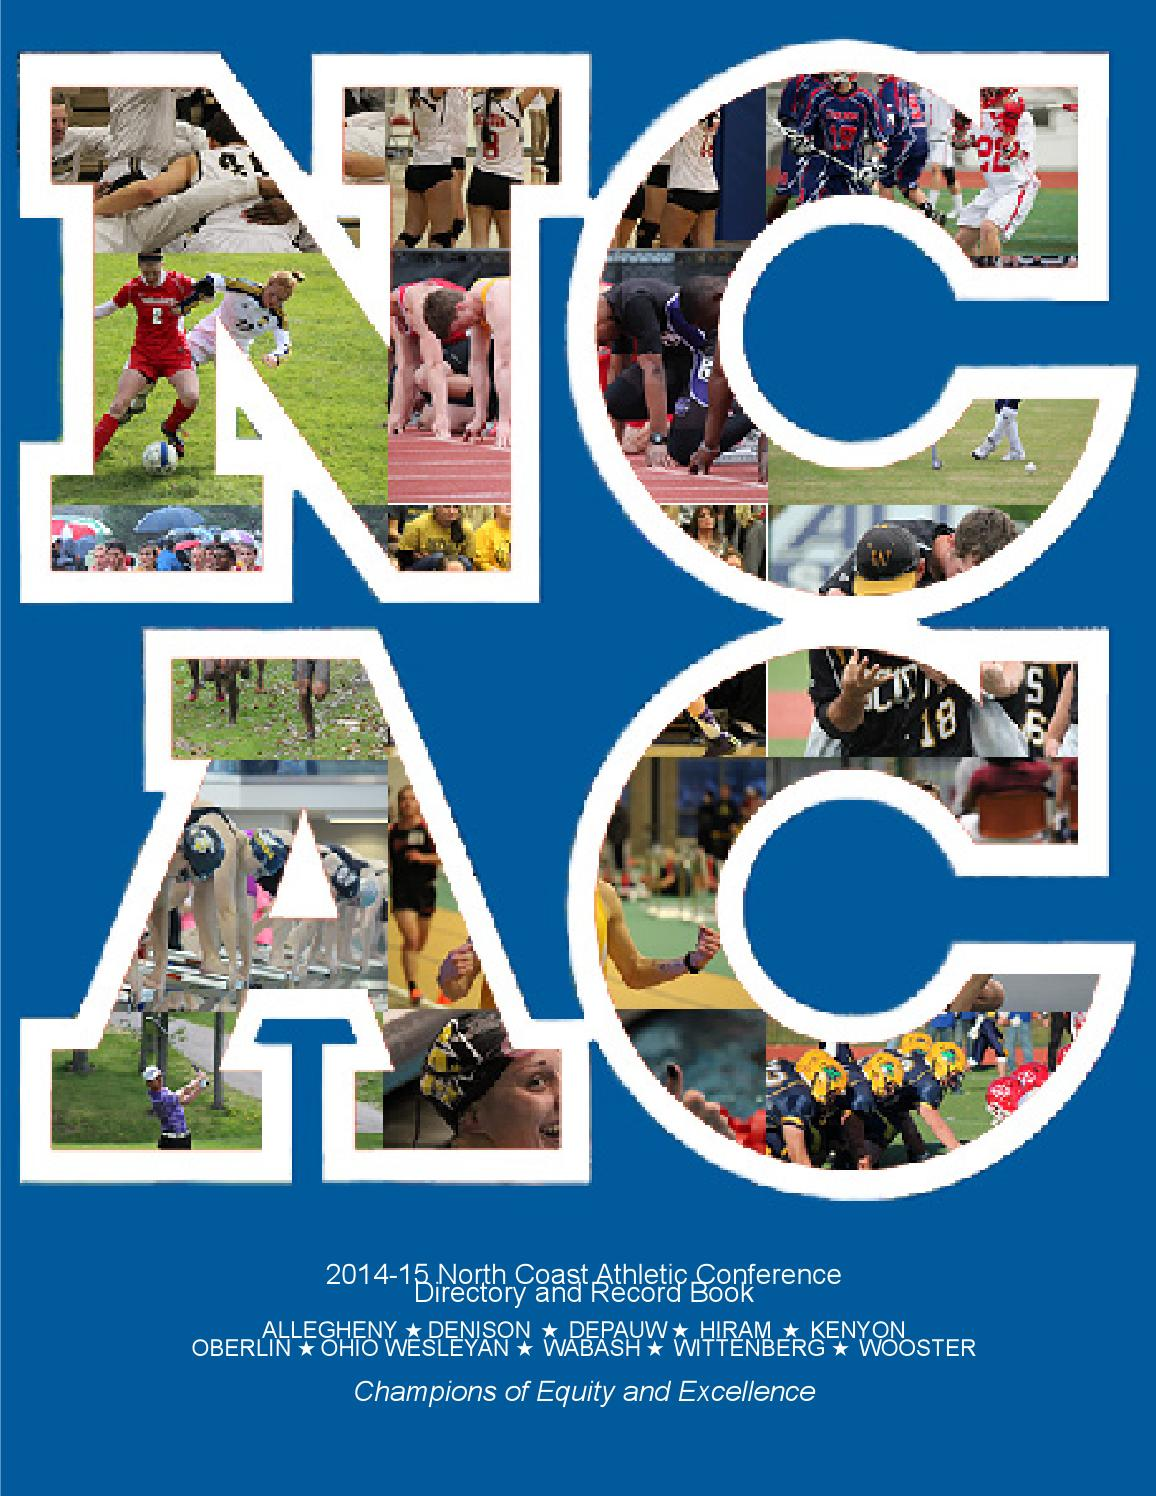 Oberlin Academic Calendar 2022 23.2014 15 Ncac Directory By North Coast Athletic Conference Issuu